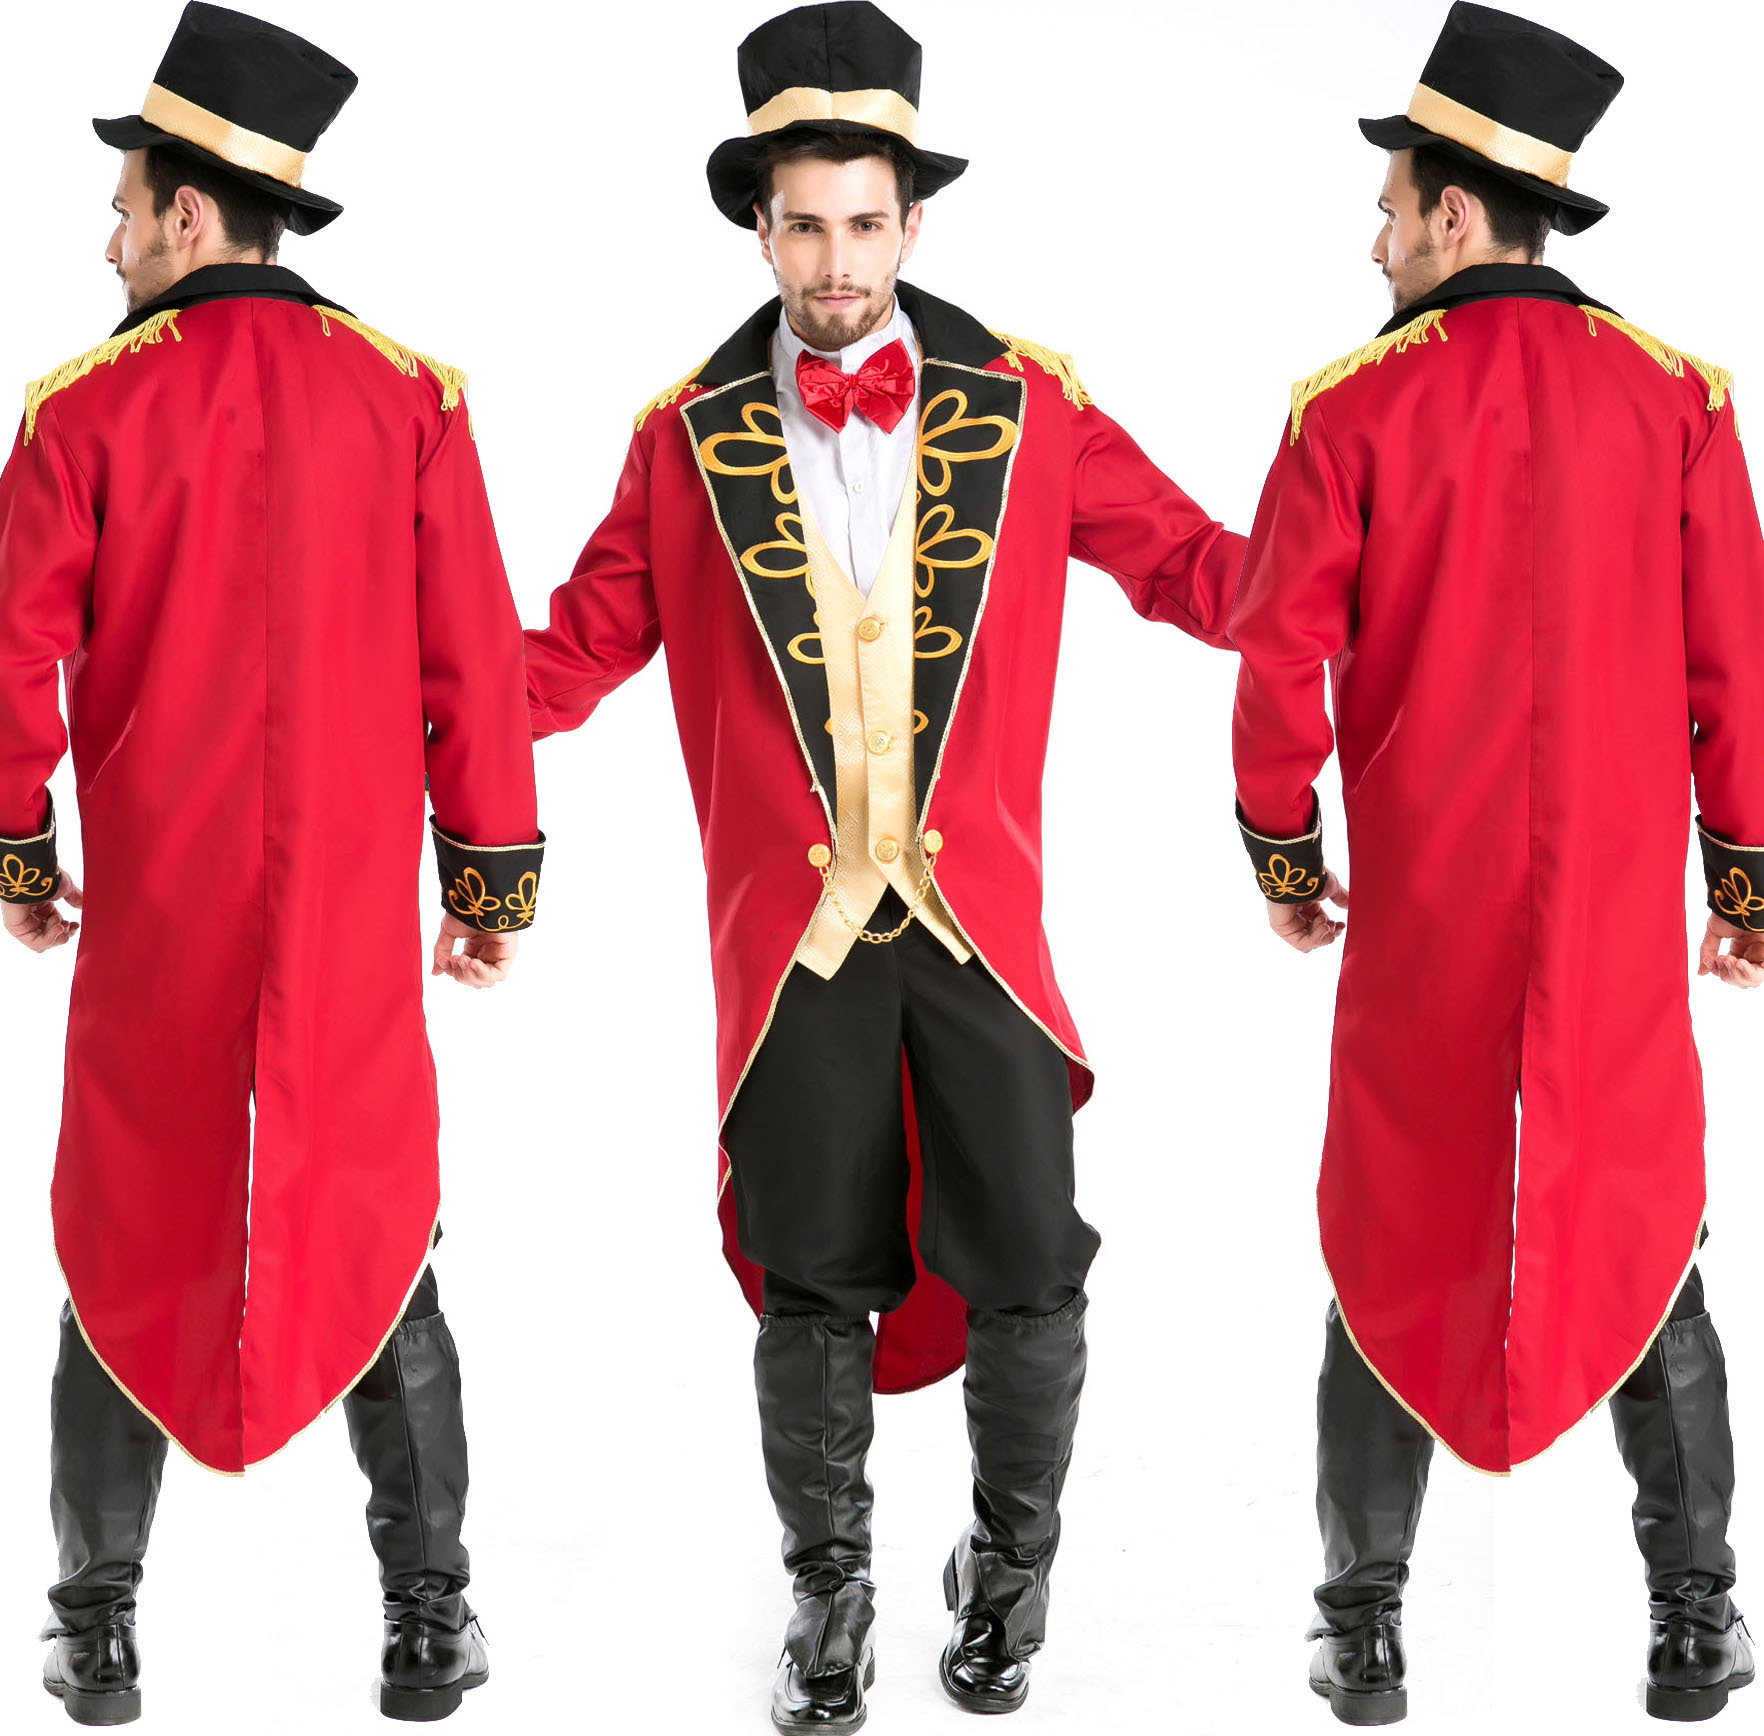 Yang Cheng magician costume role play costumes costumes costumes costumes costumes